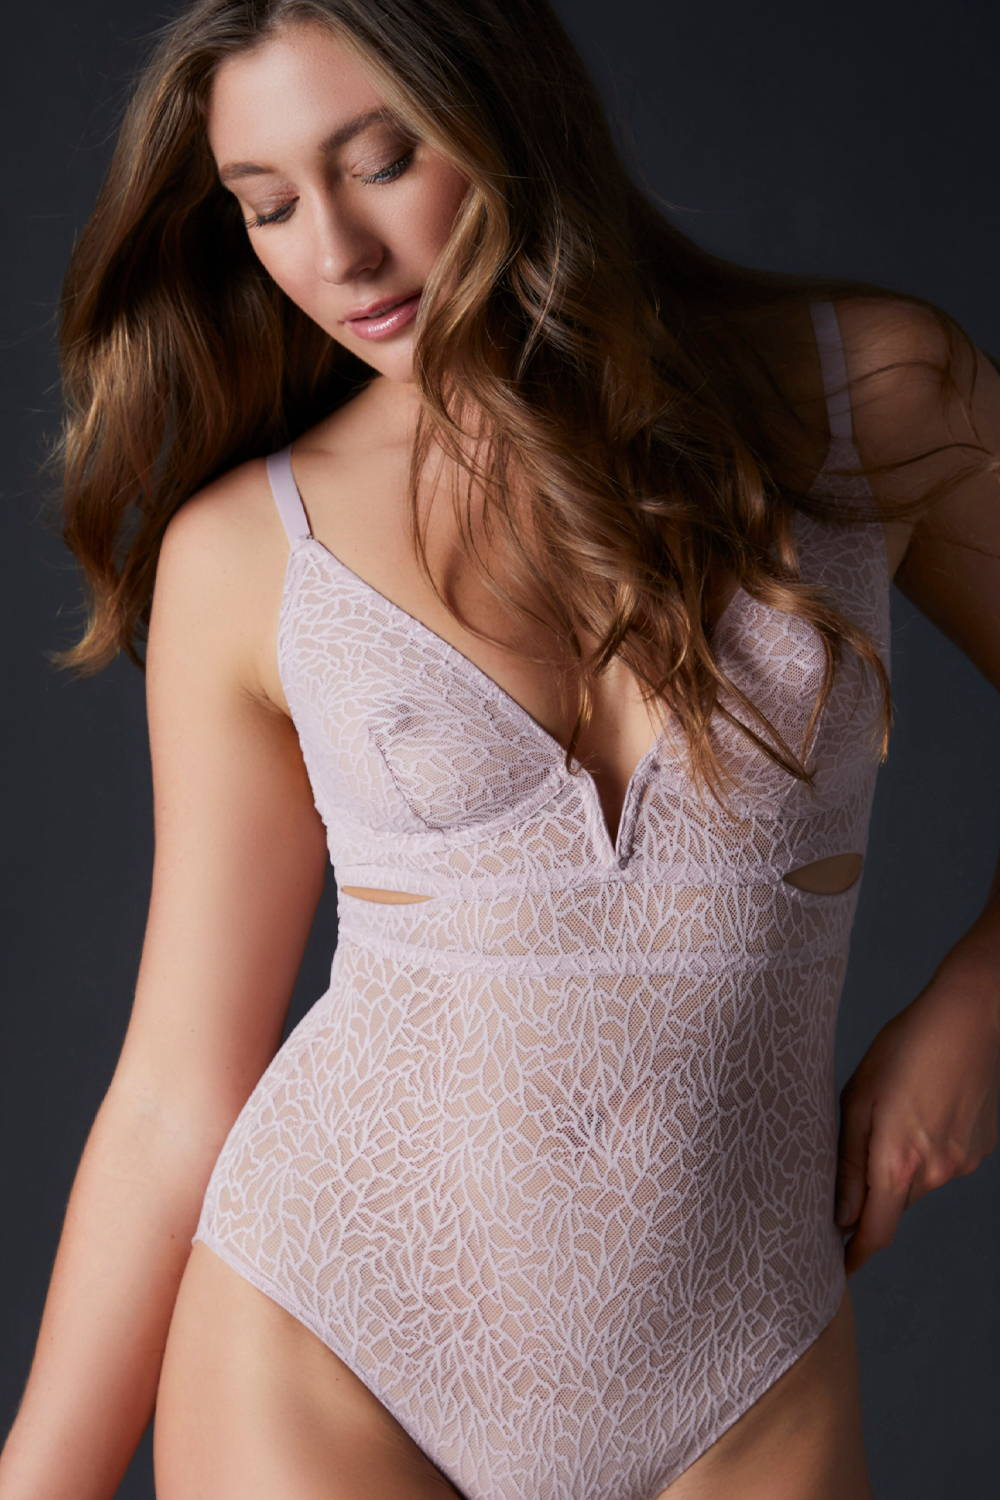 Woman wearing the Else Zoe Bodysuit in pink graphic modern lace on sale for an additional 70% off